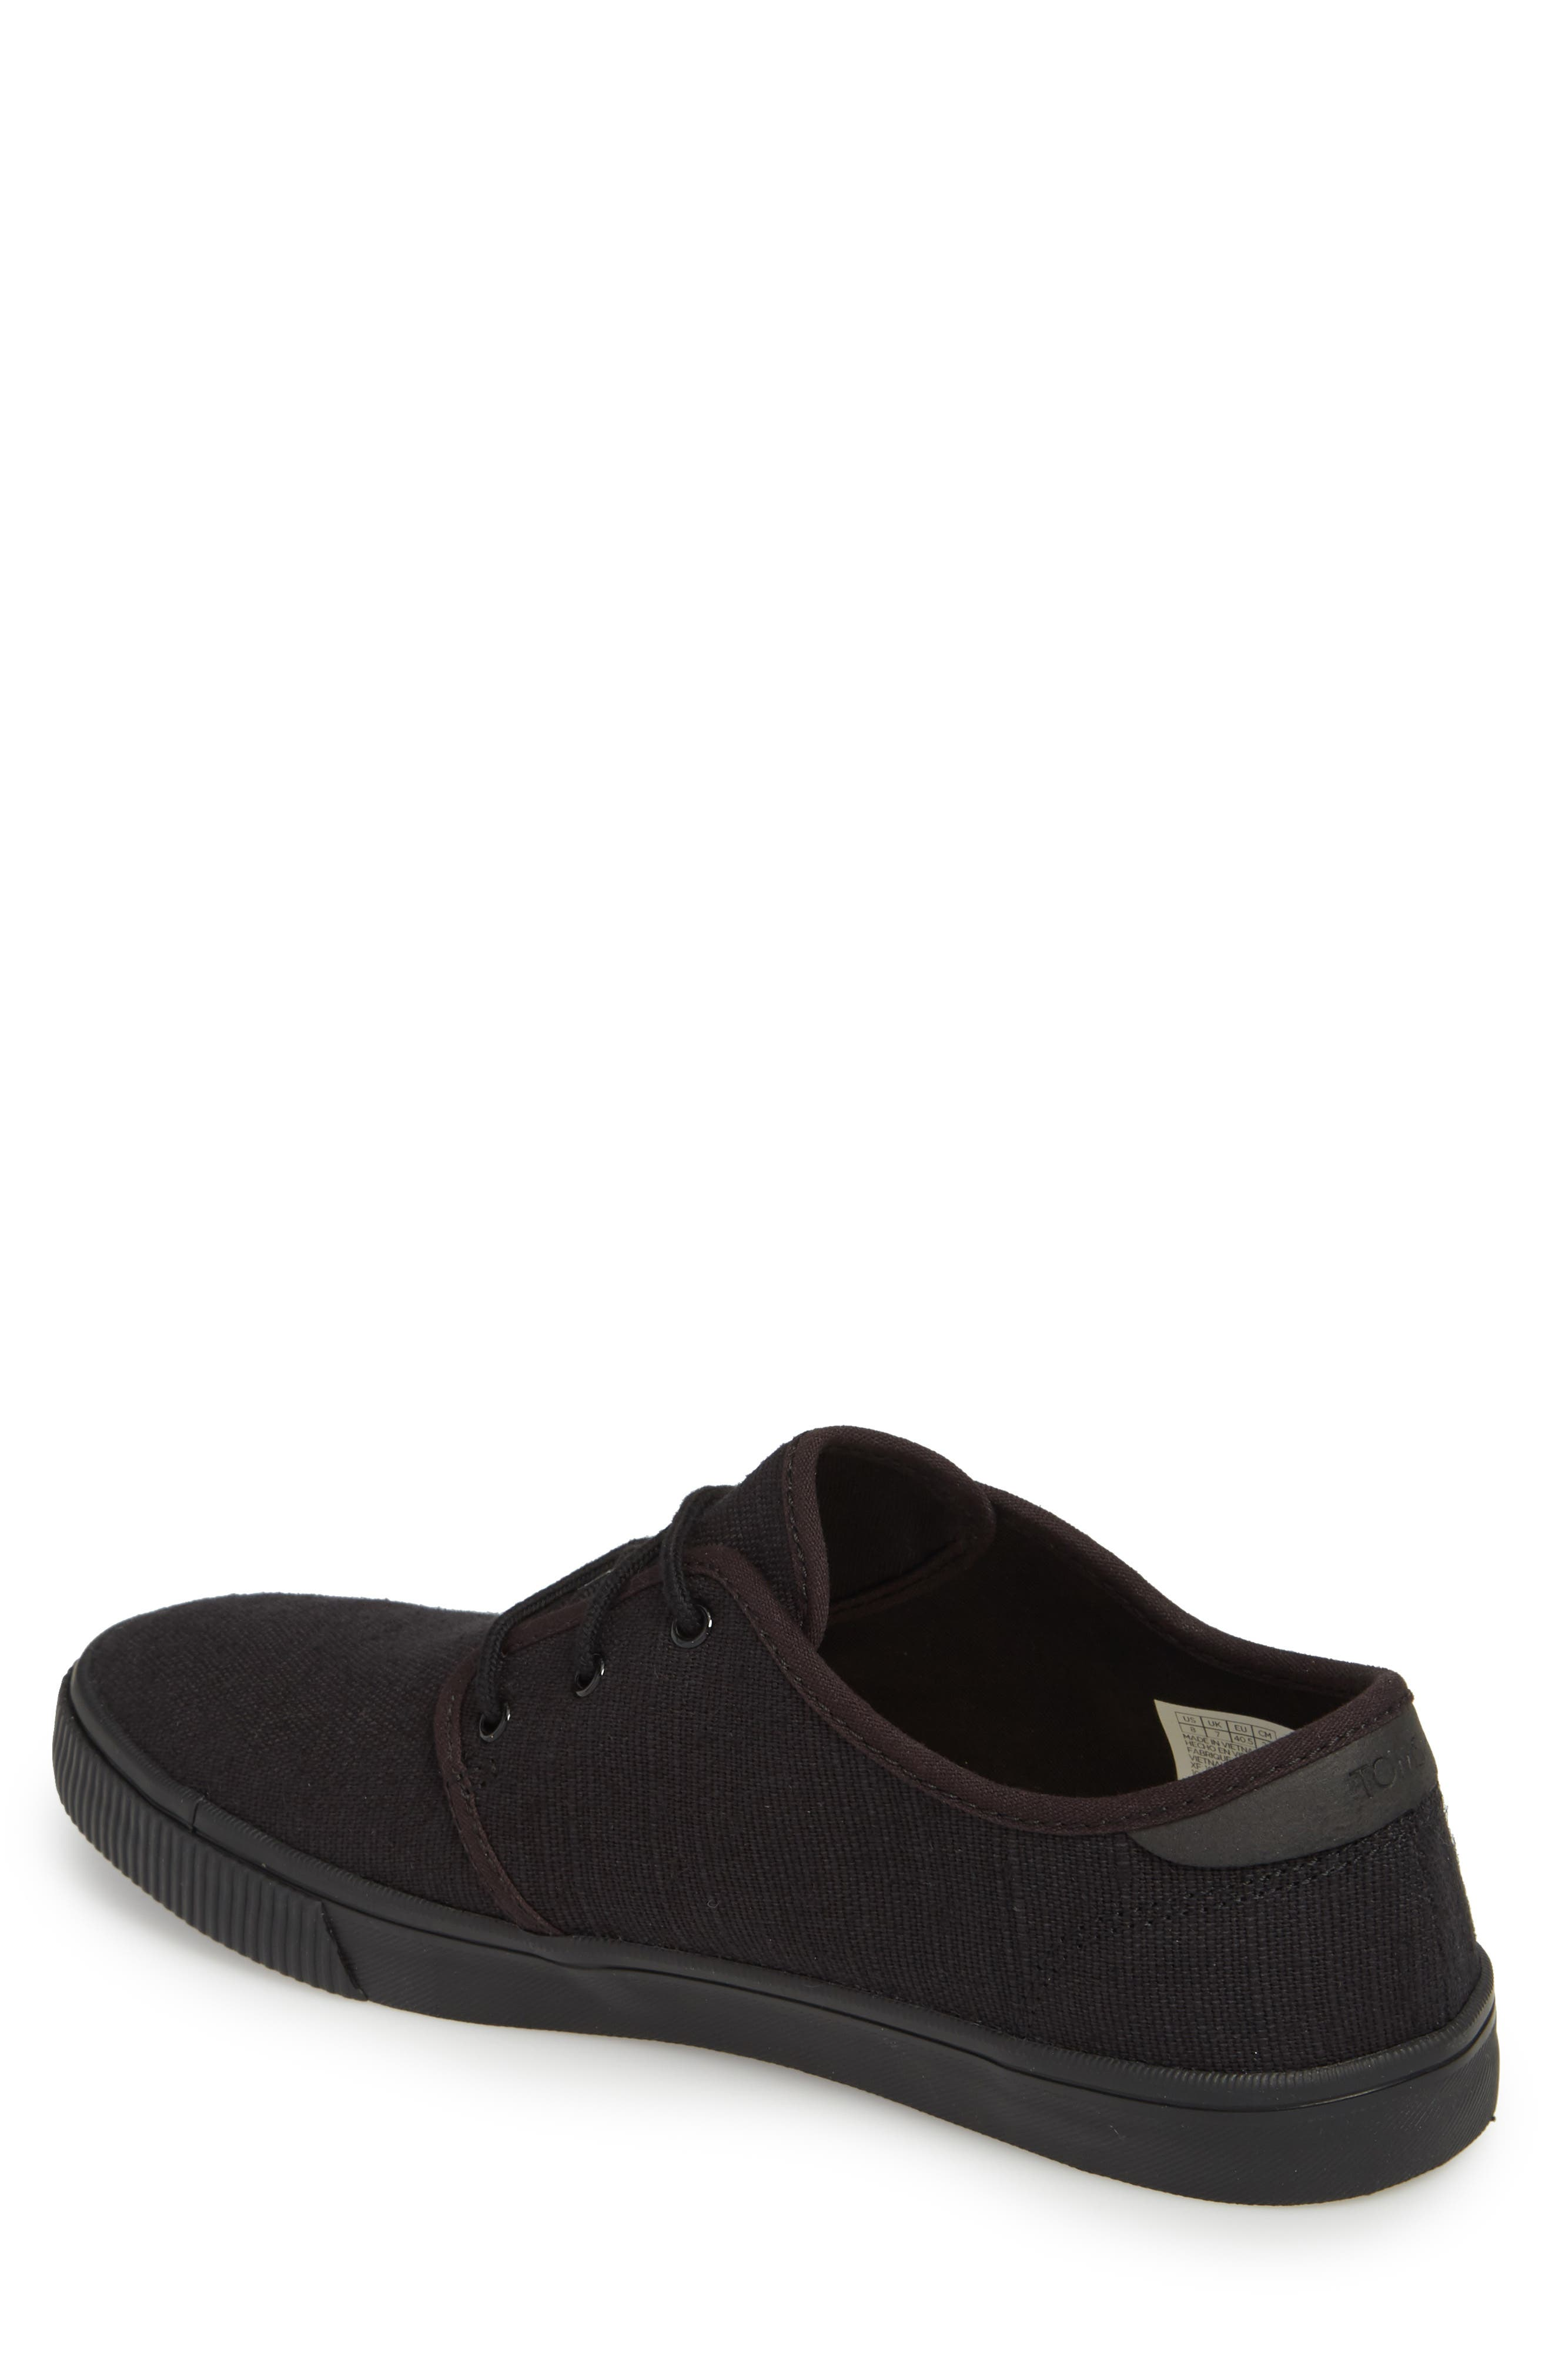 Carlo Low Top Sneaker,                             Alternate thumbnail 2, color,                             BLACK/ BLACK HERITAGE CANVAS